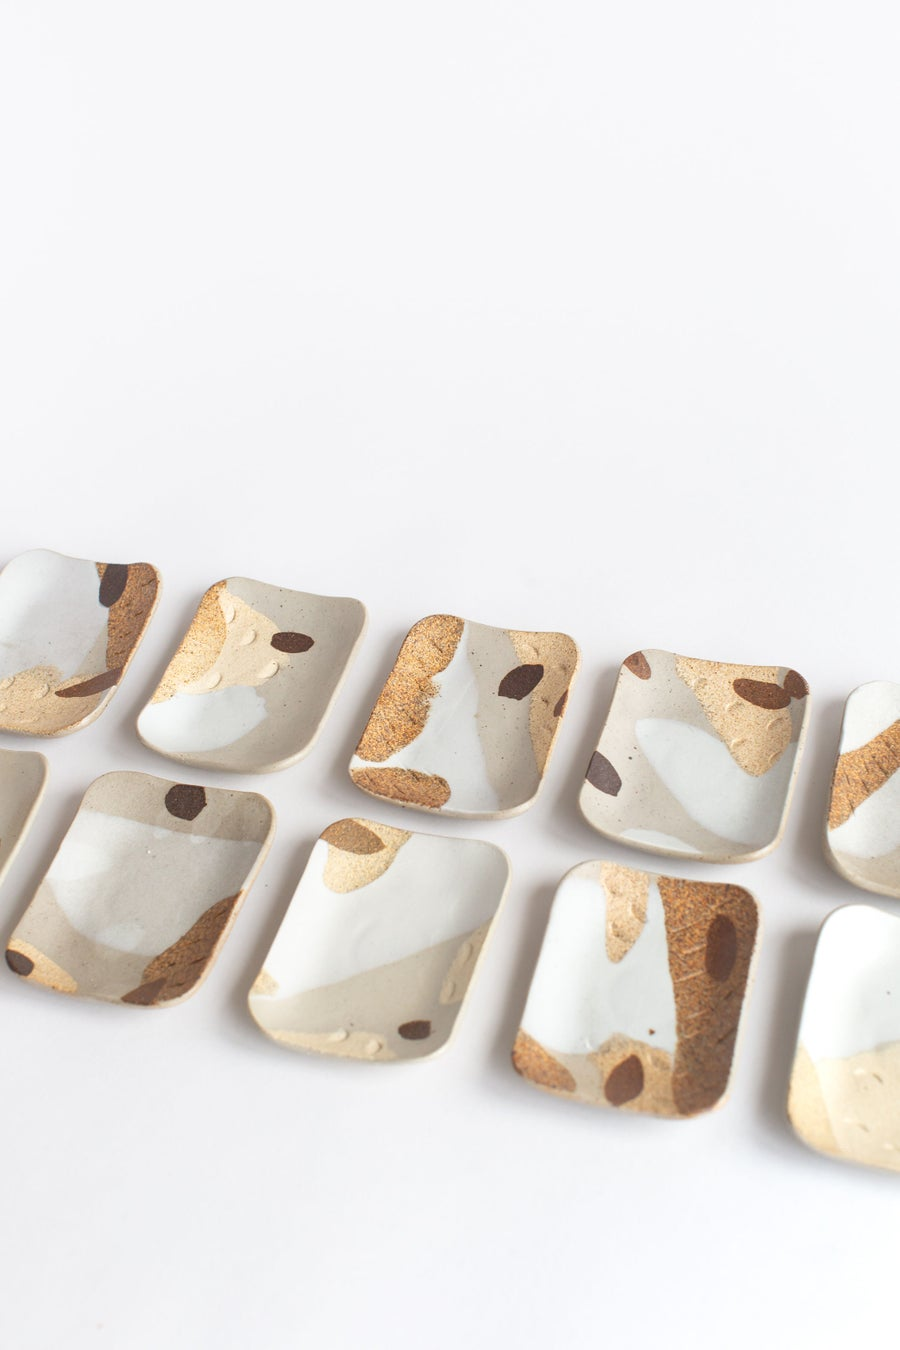 Image of Natural Sand Porcelain Inlay Soap Dishes